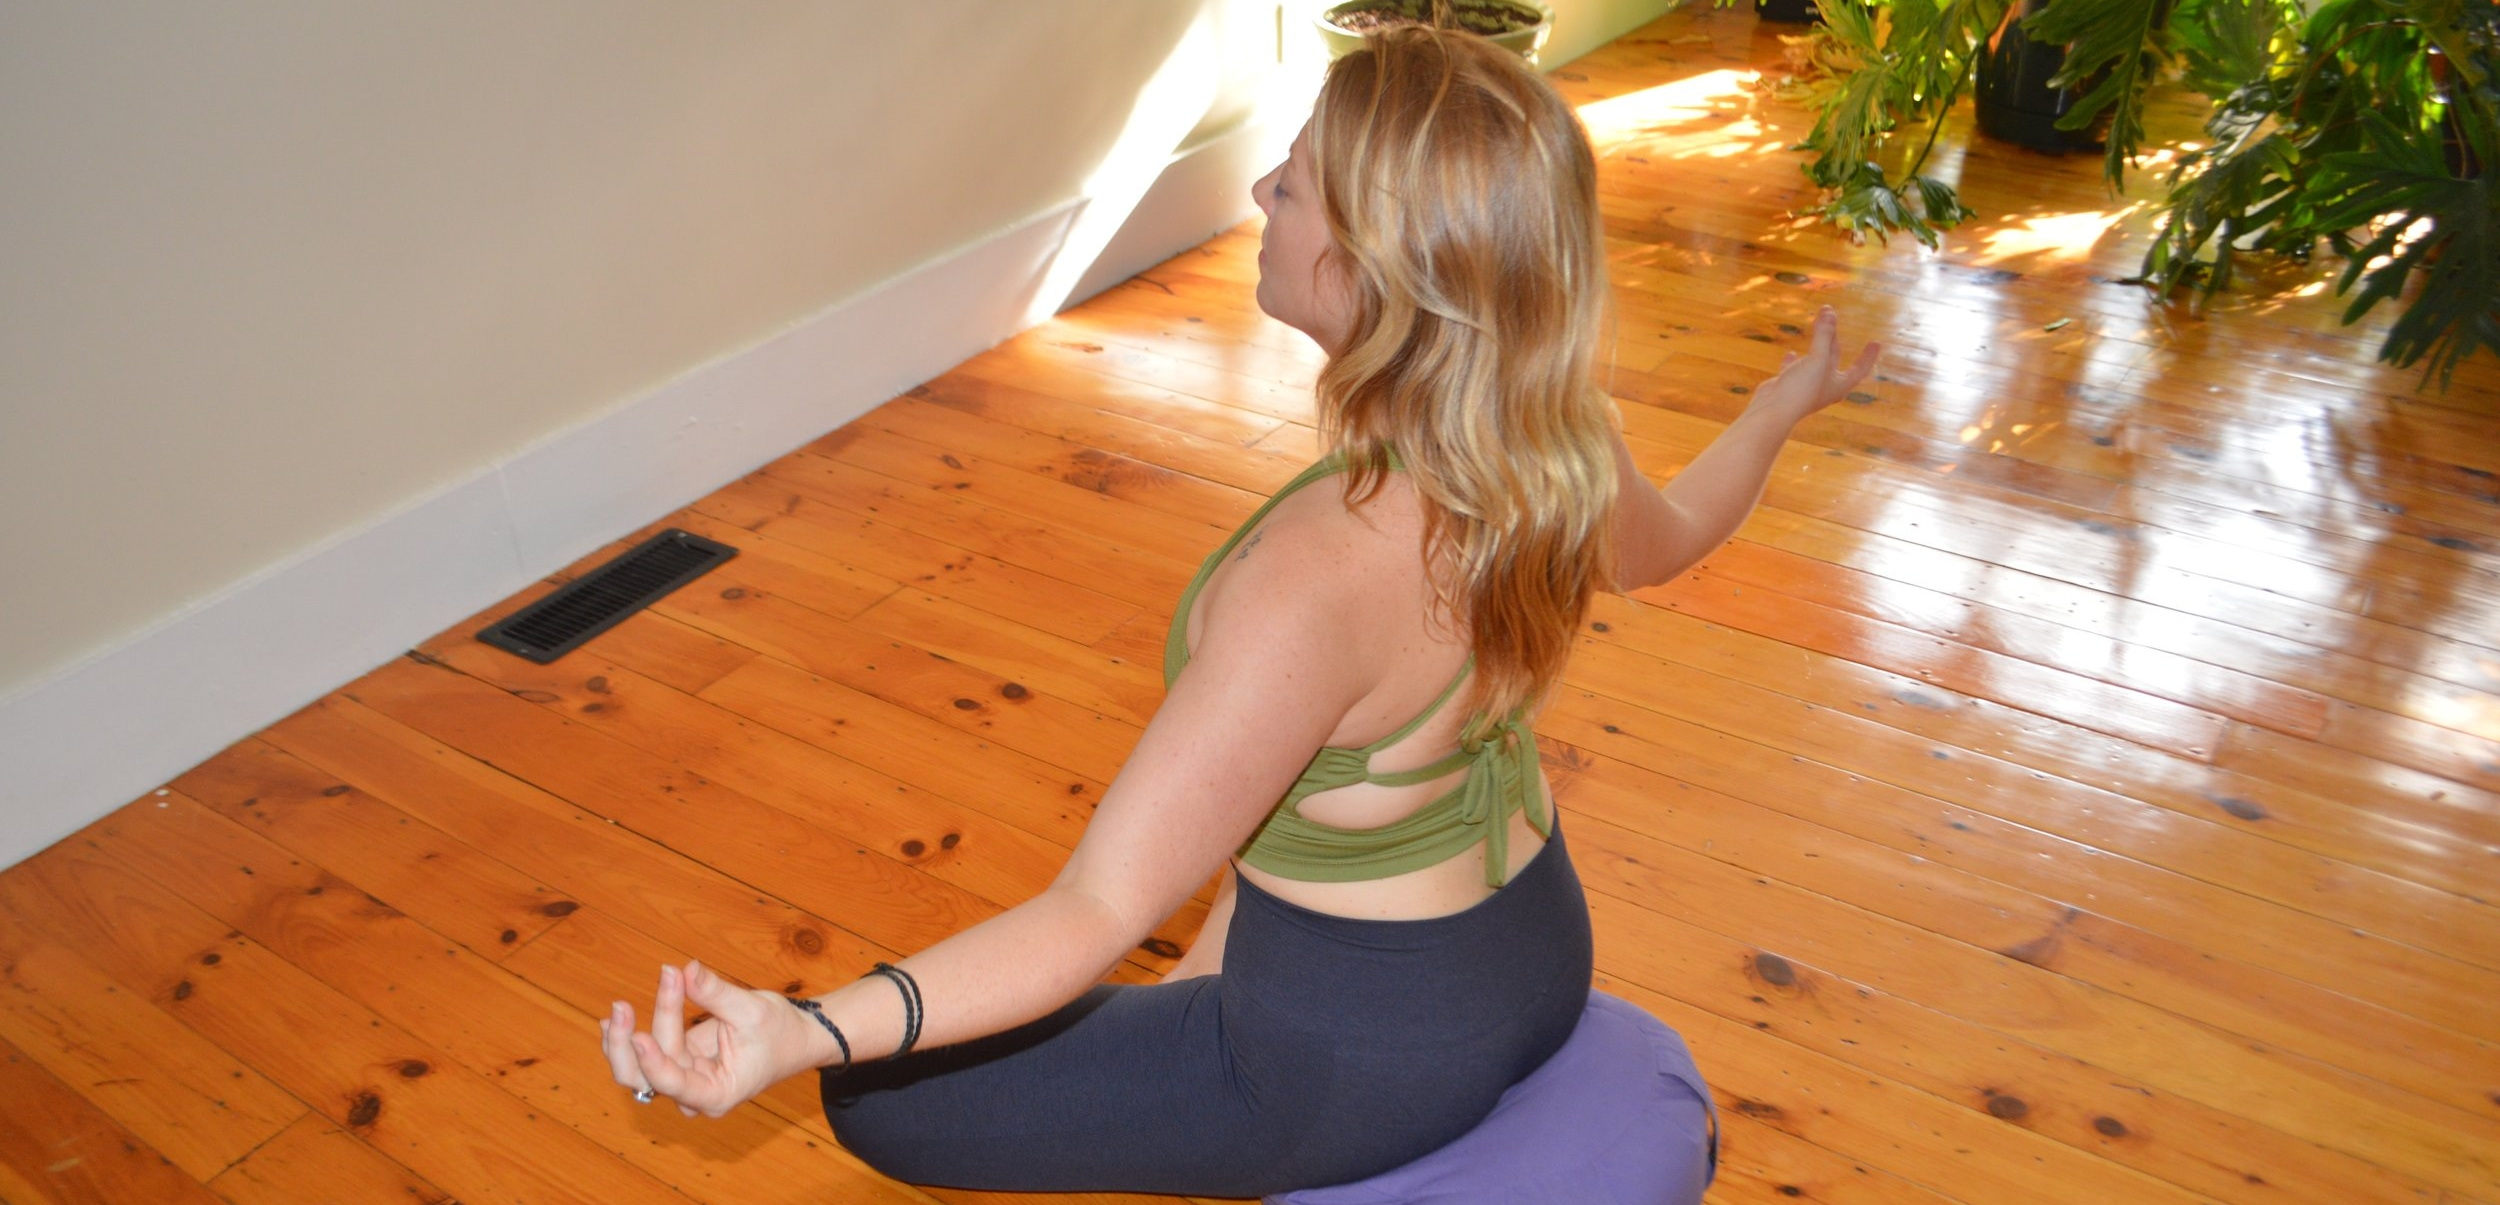 holistic healing wellness portsmouth newburyport physical therapy